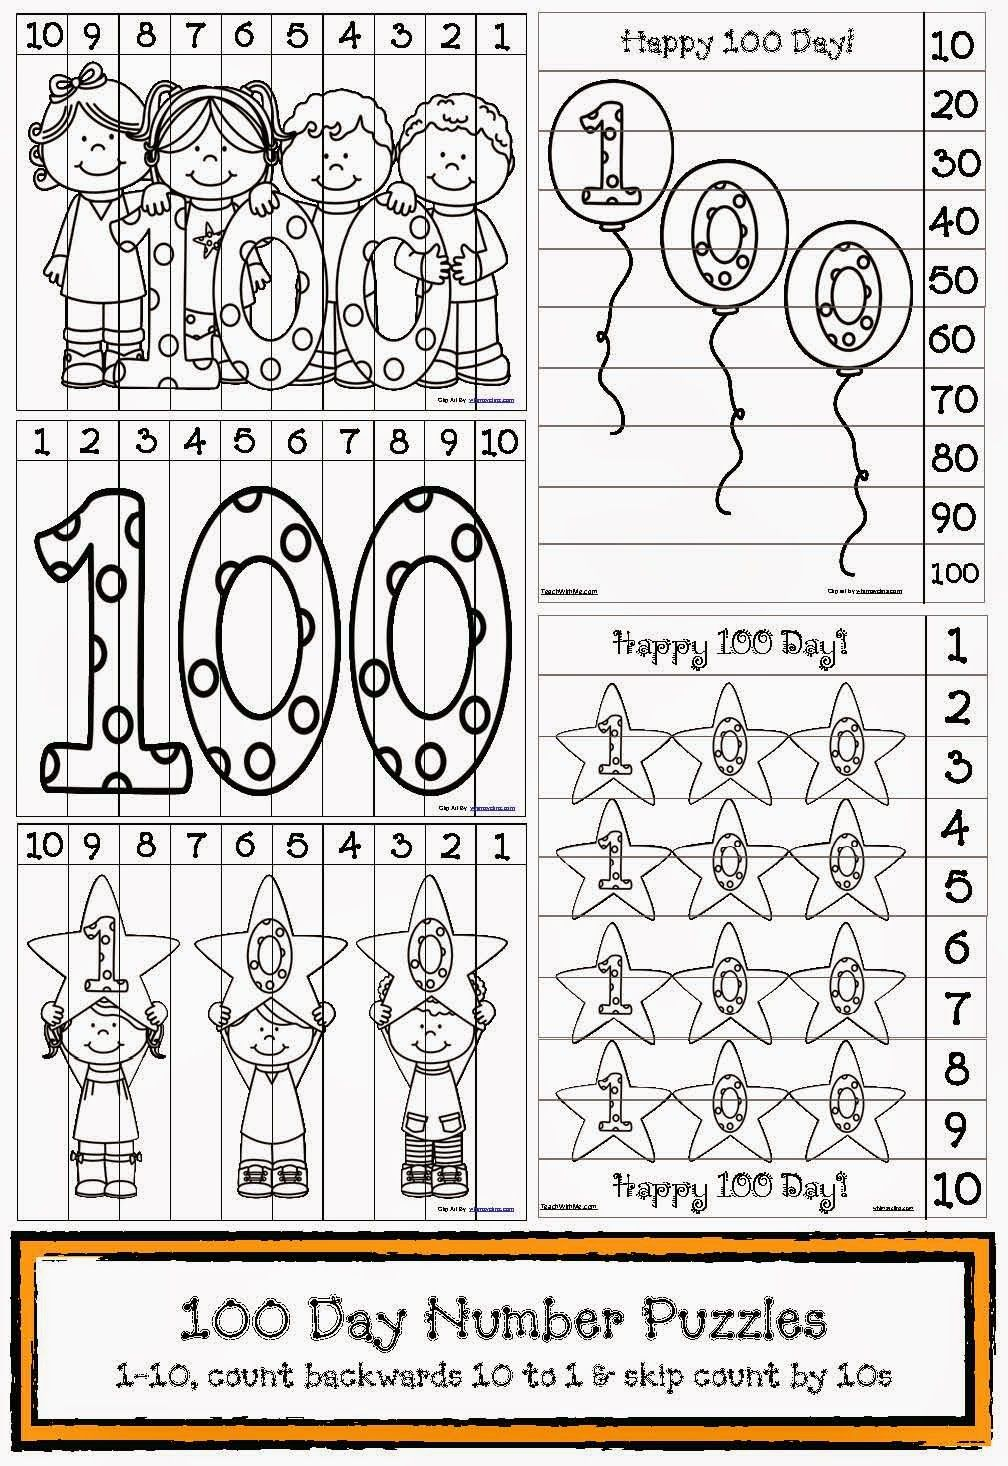 100 Day Number Puzzles To Color | Number puzzles, Classroom freebies ...